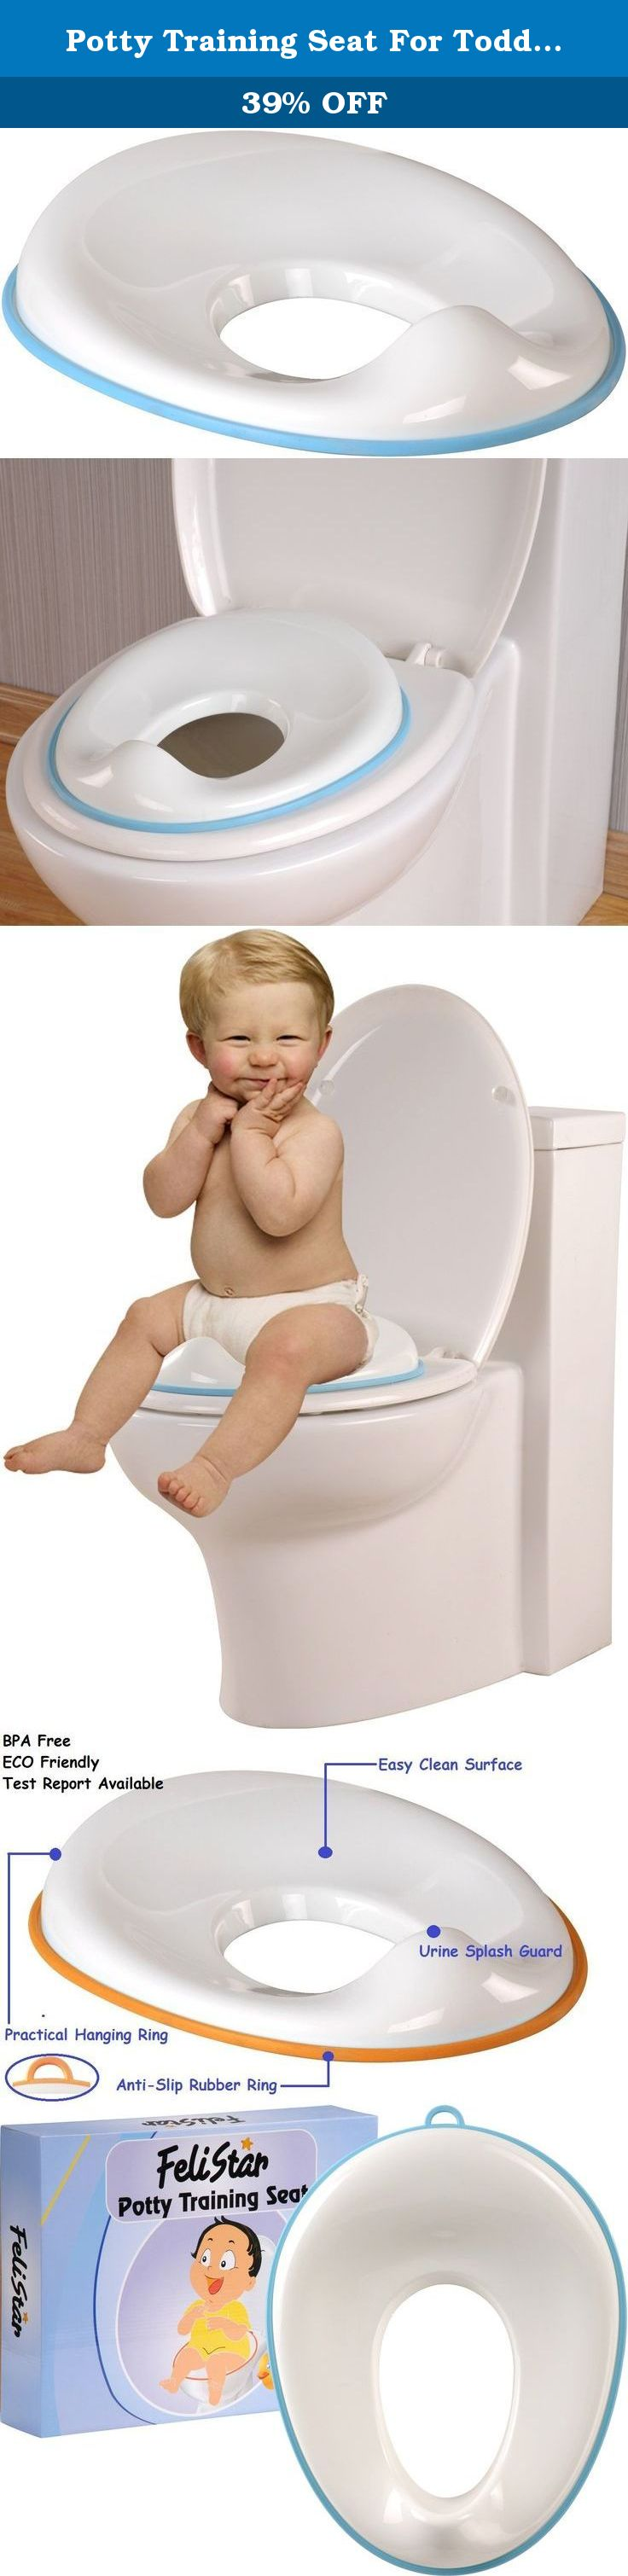 potty chair large child inflatable outdoor training seat for toddlers babies unisex train boys girls